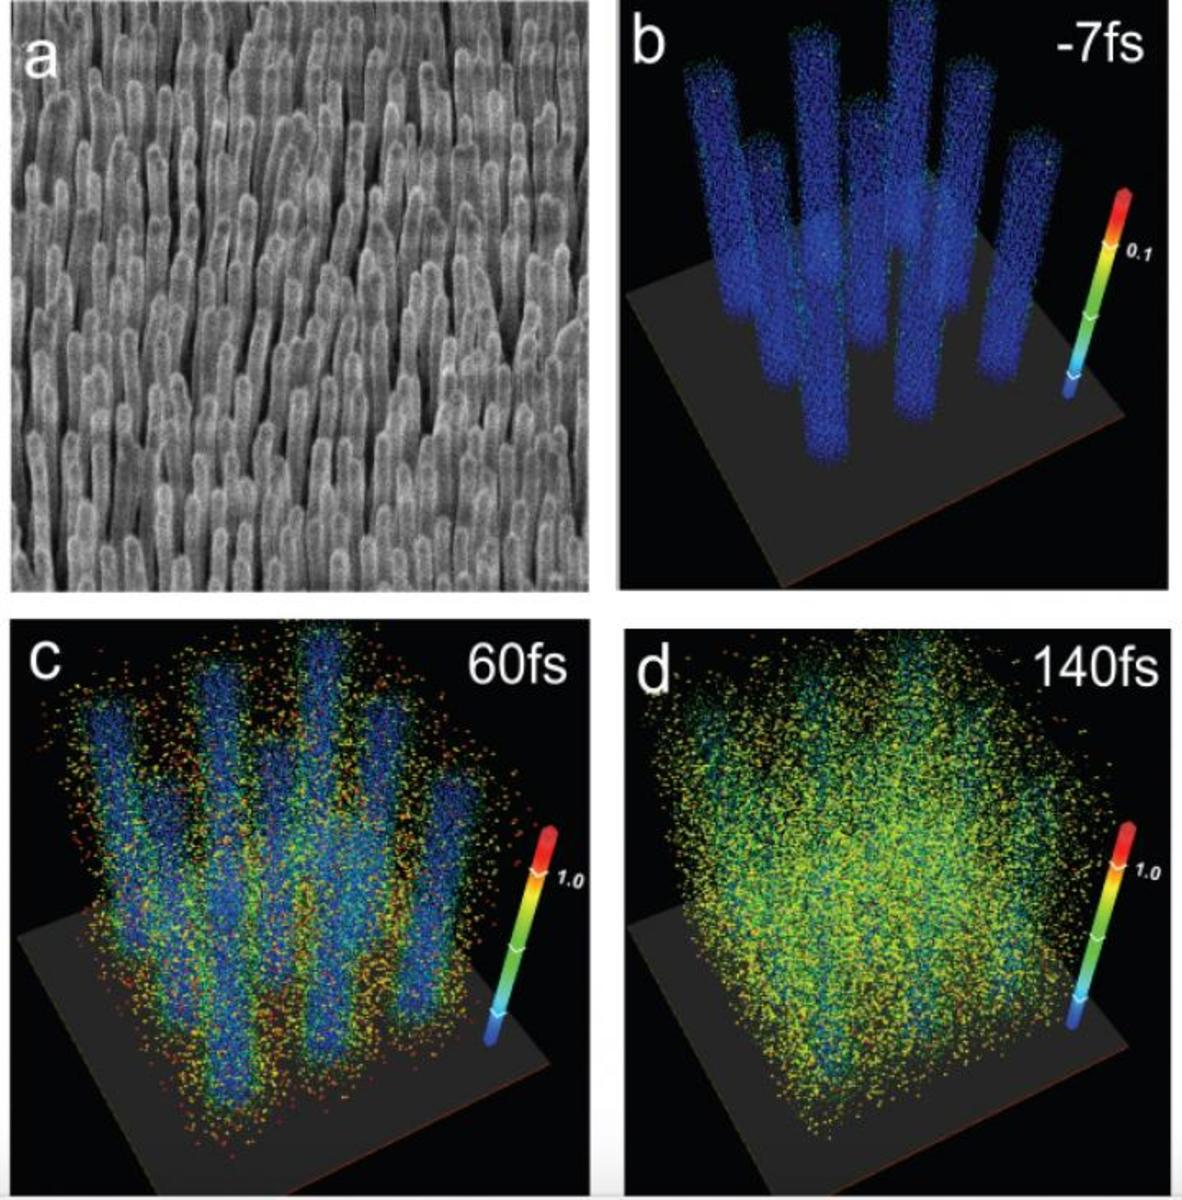 Nuclear fusion with nanowires.